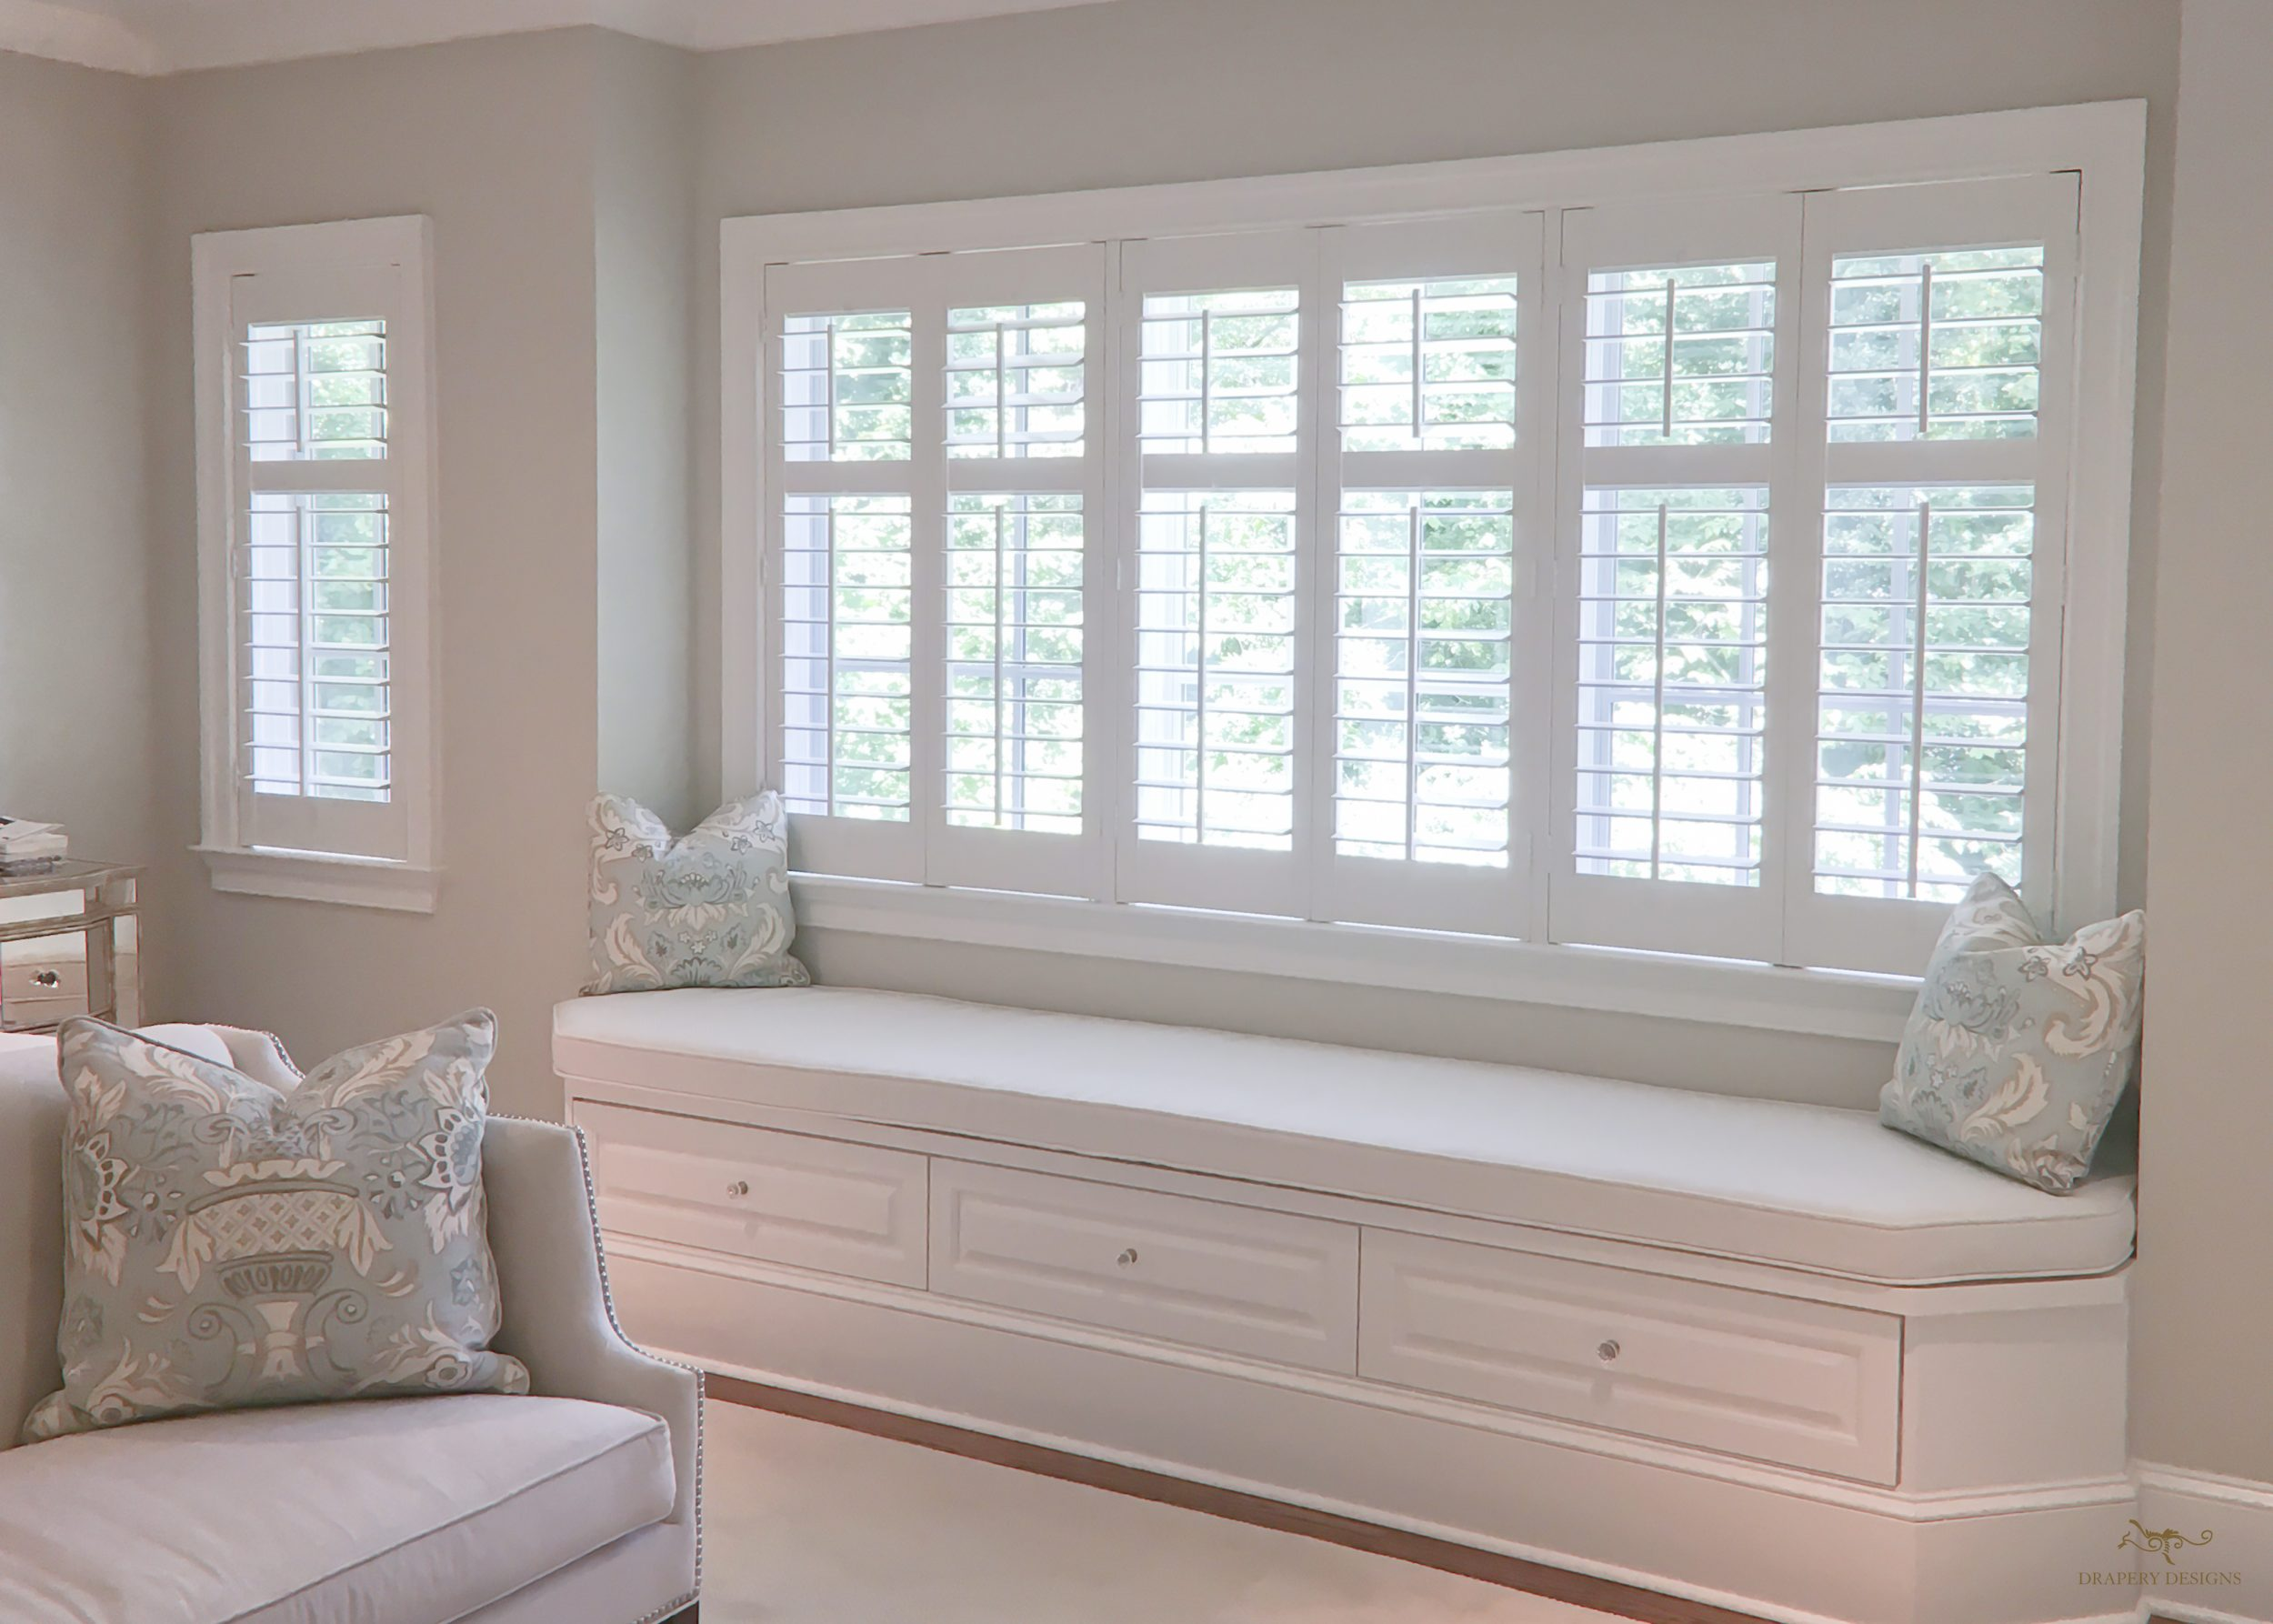 Window Seat Cushion Well Appointed Cottage Bathroom Features A Builtin Stained Oak